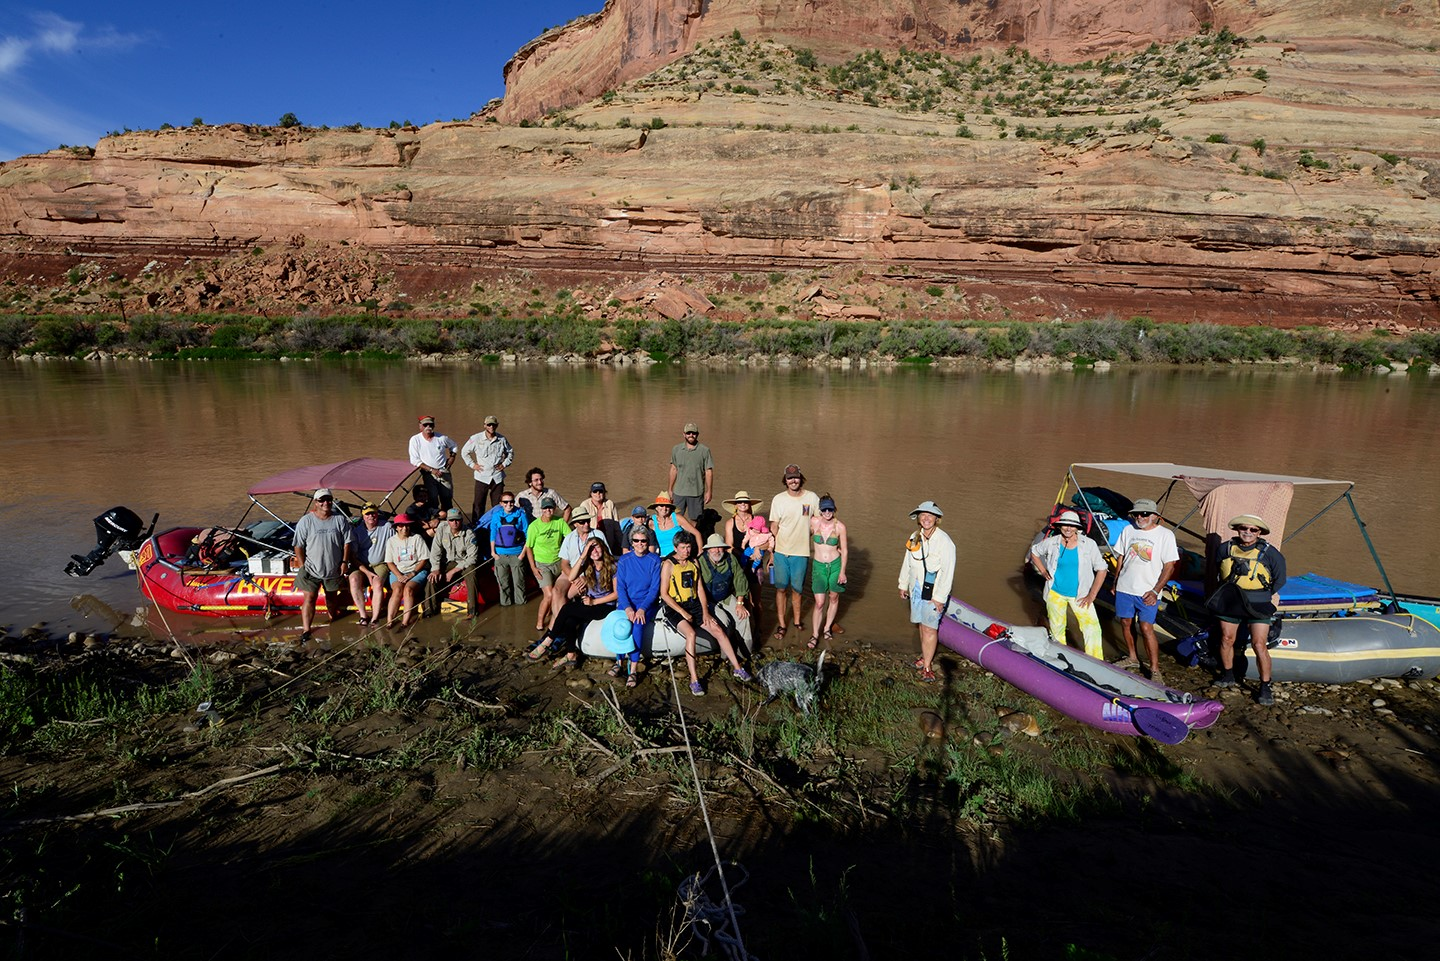 CCA volunteers enjoying Ruby and Horsethief Canyons on the Colorado River in the McInnis Canyon National Conservation Area.